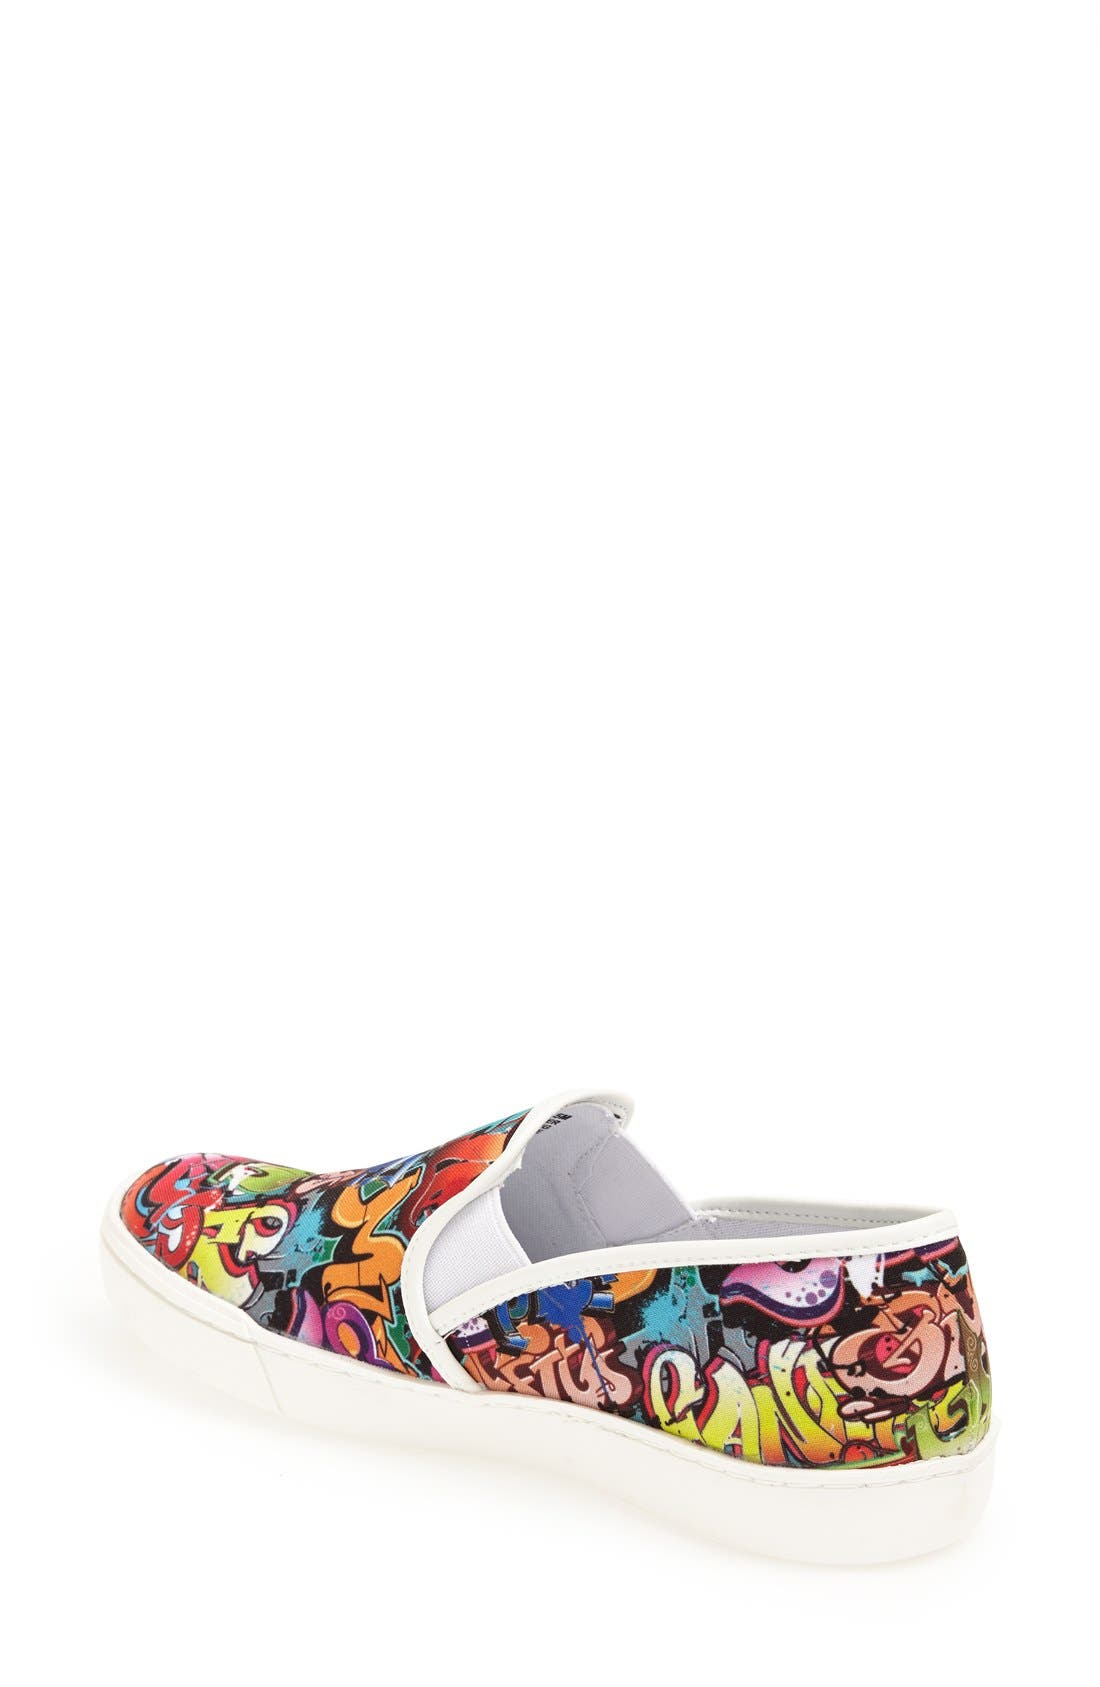 Alternate Image 2  - Steve Madden 'Ecentrcm' Graffiti Print Slip-On Sneaker (Women)